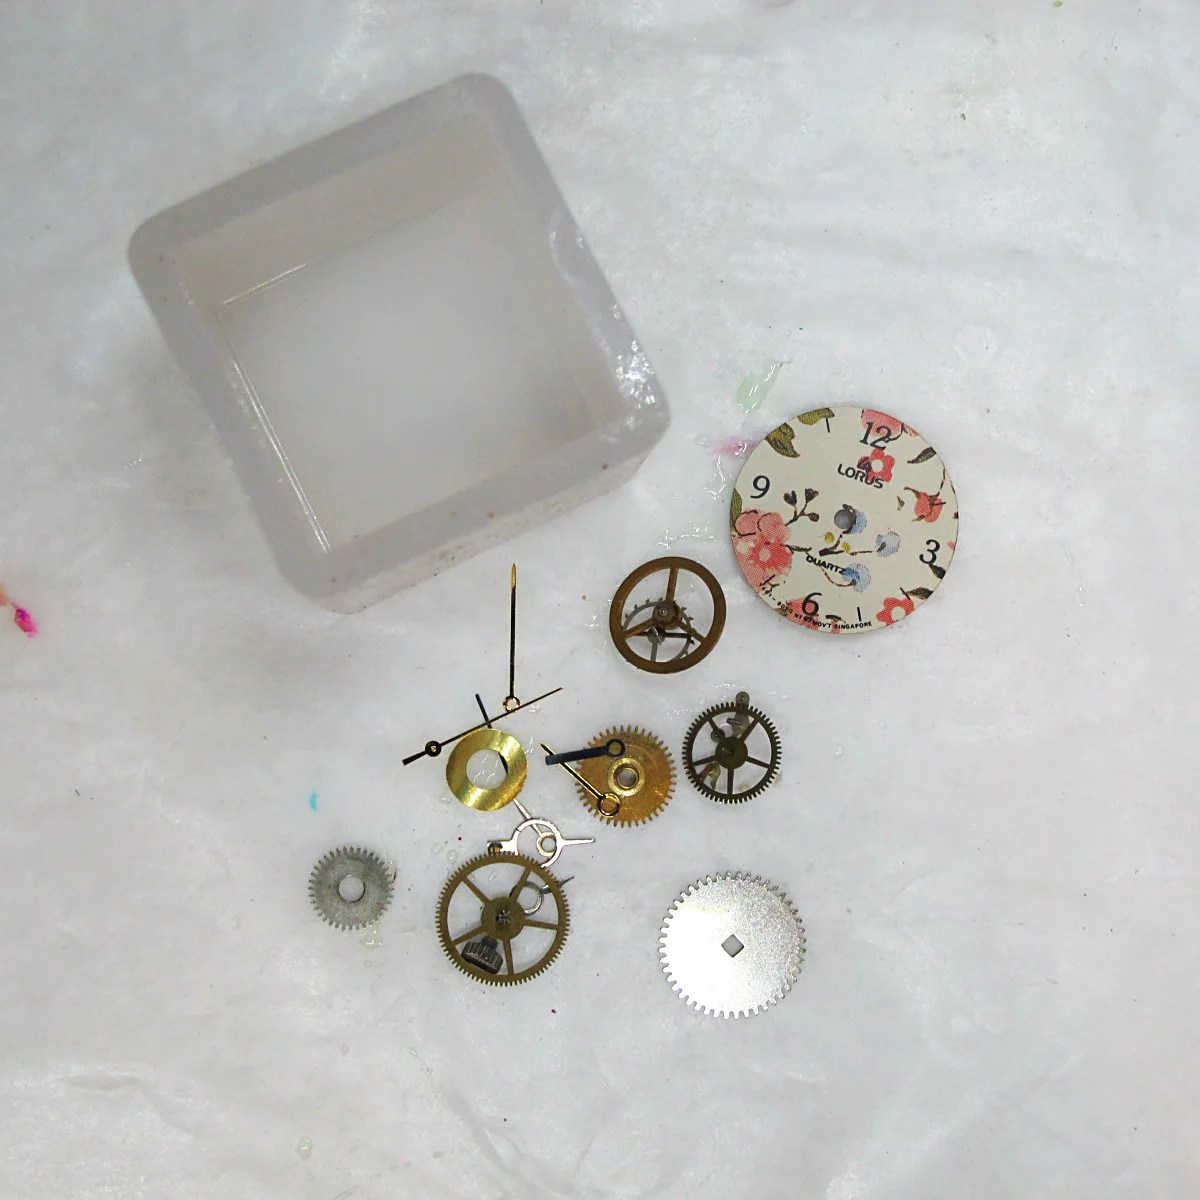 silicone mold and watch parts